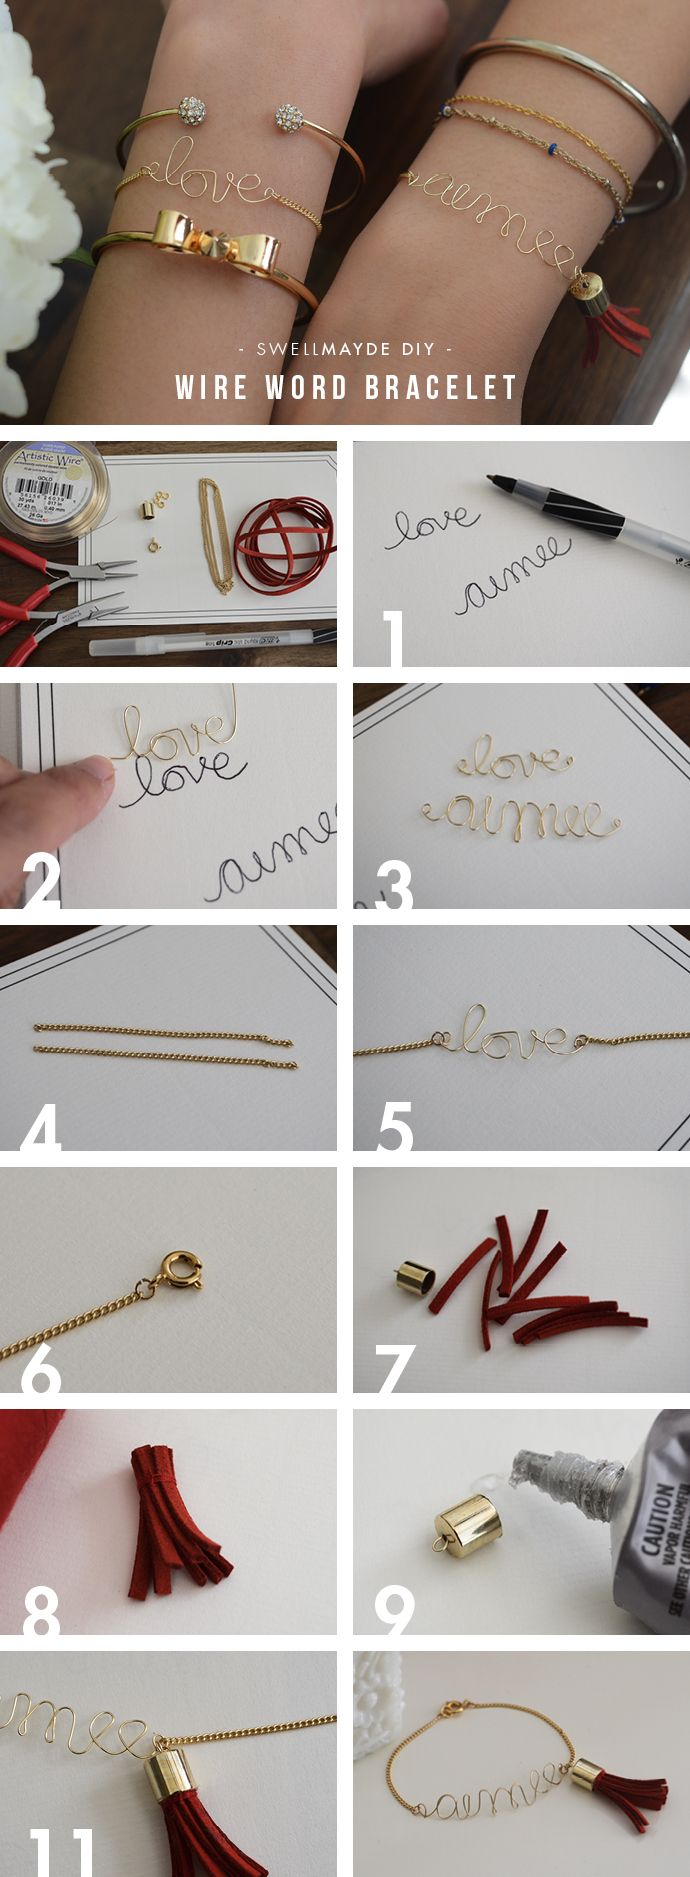 diy love bracelets!!! swellmayde so cool! | accessories